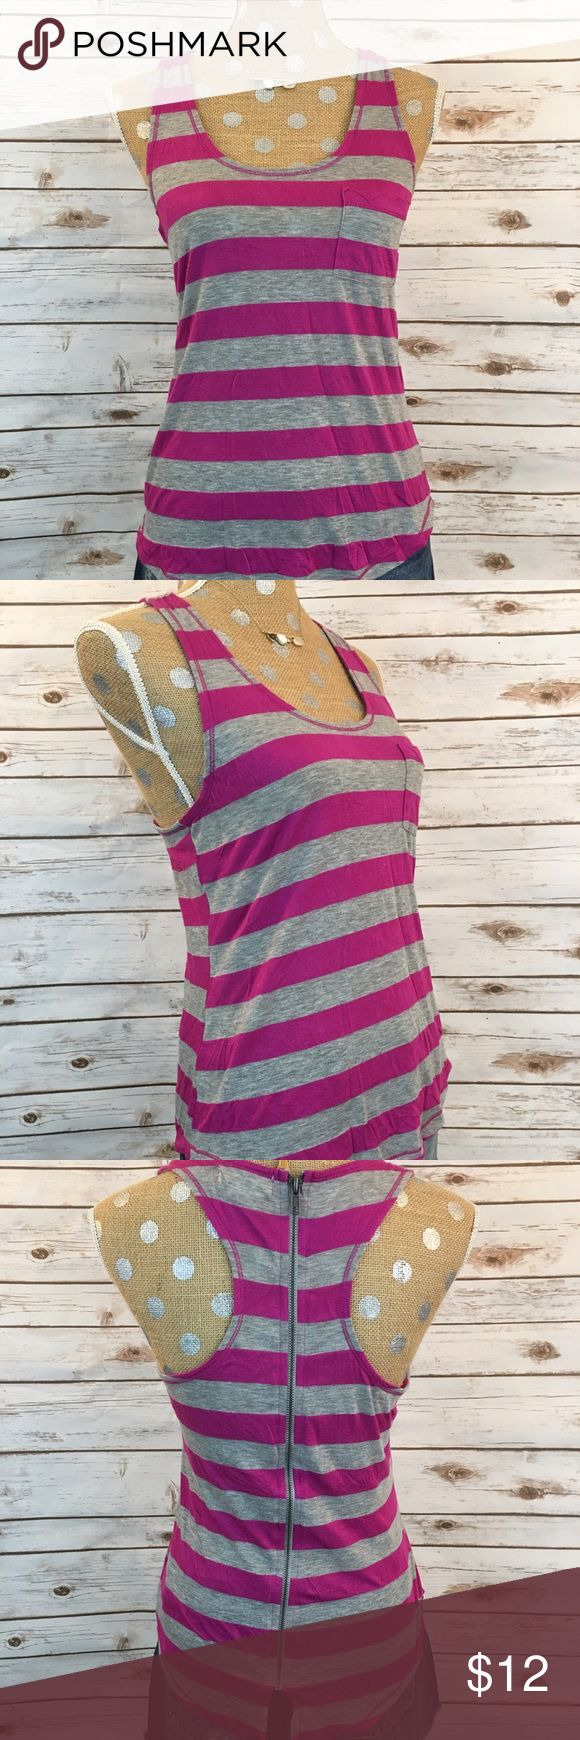 Purple & Gray Striped Zip Up Tank 🔮 Purple & Gray Striped Tank 🔮Zips Up The Back ❤️ Soft and stylish ♠️ 52% Polyester 38% Raylon 🎀 Great Condition 😍  🚫 NO TRADES 🌟 POSH Rules Only 🌟 🎉 Customized Bundle Discounts 💋 💗 Offers please use offer button below 🔻 OP Tops Tank Tops